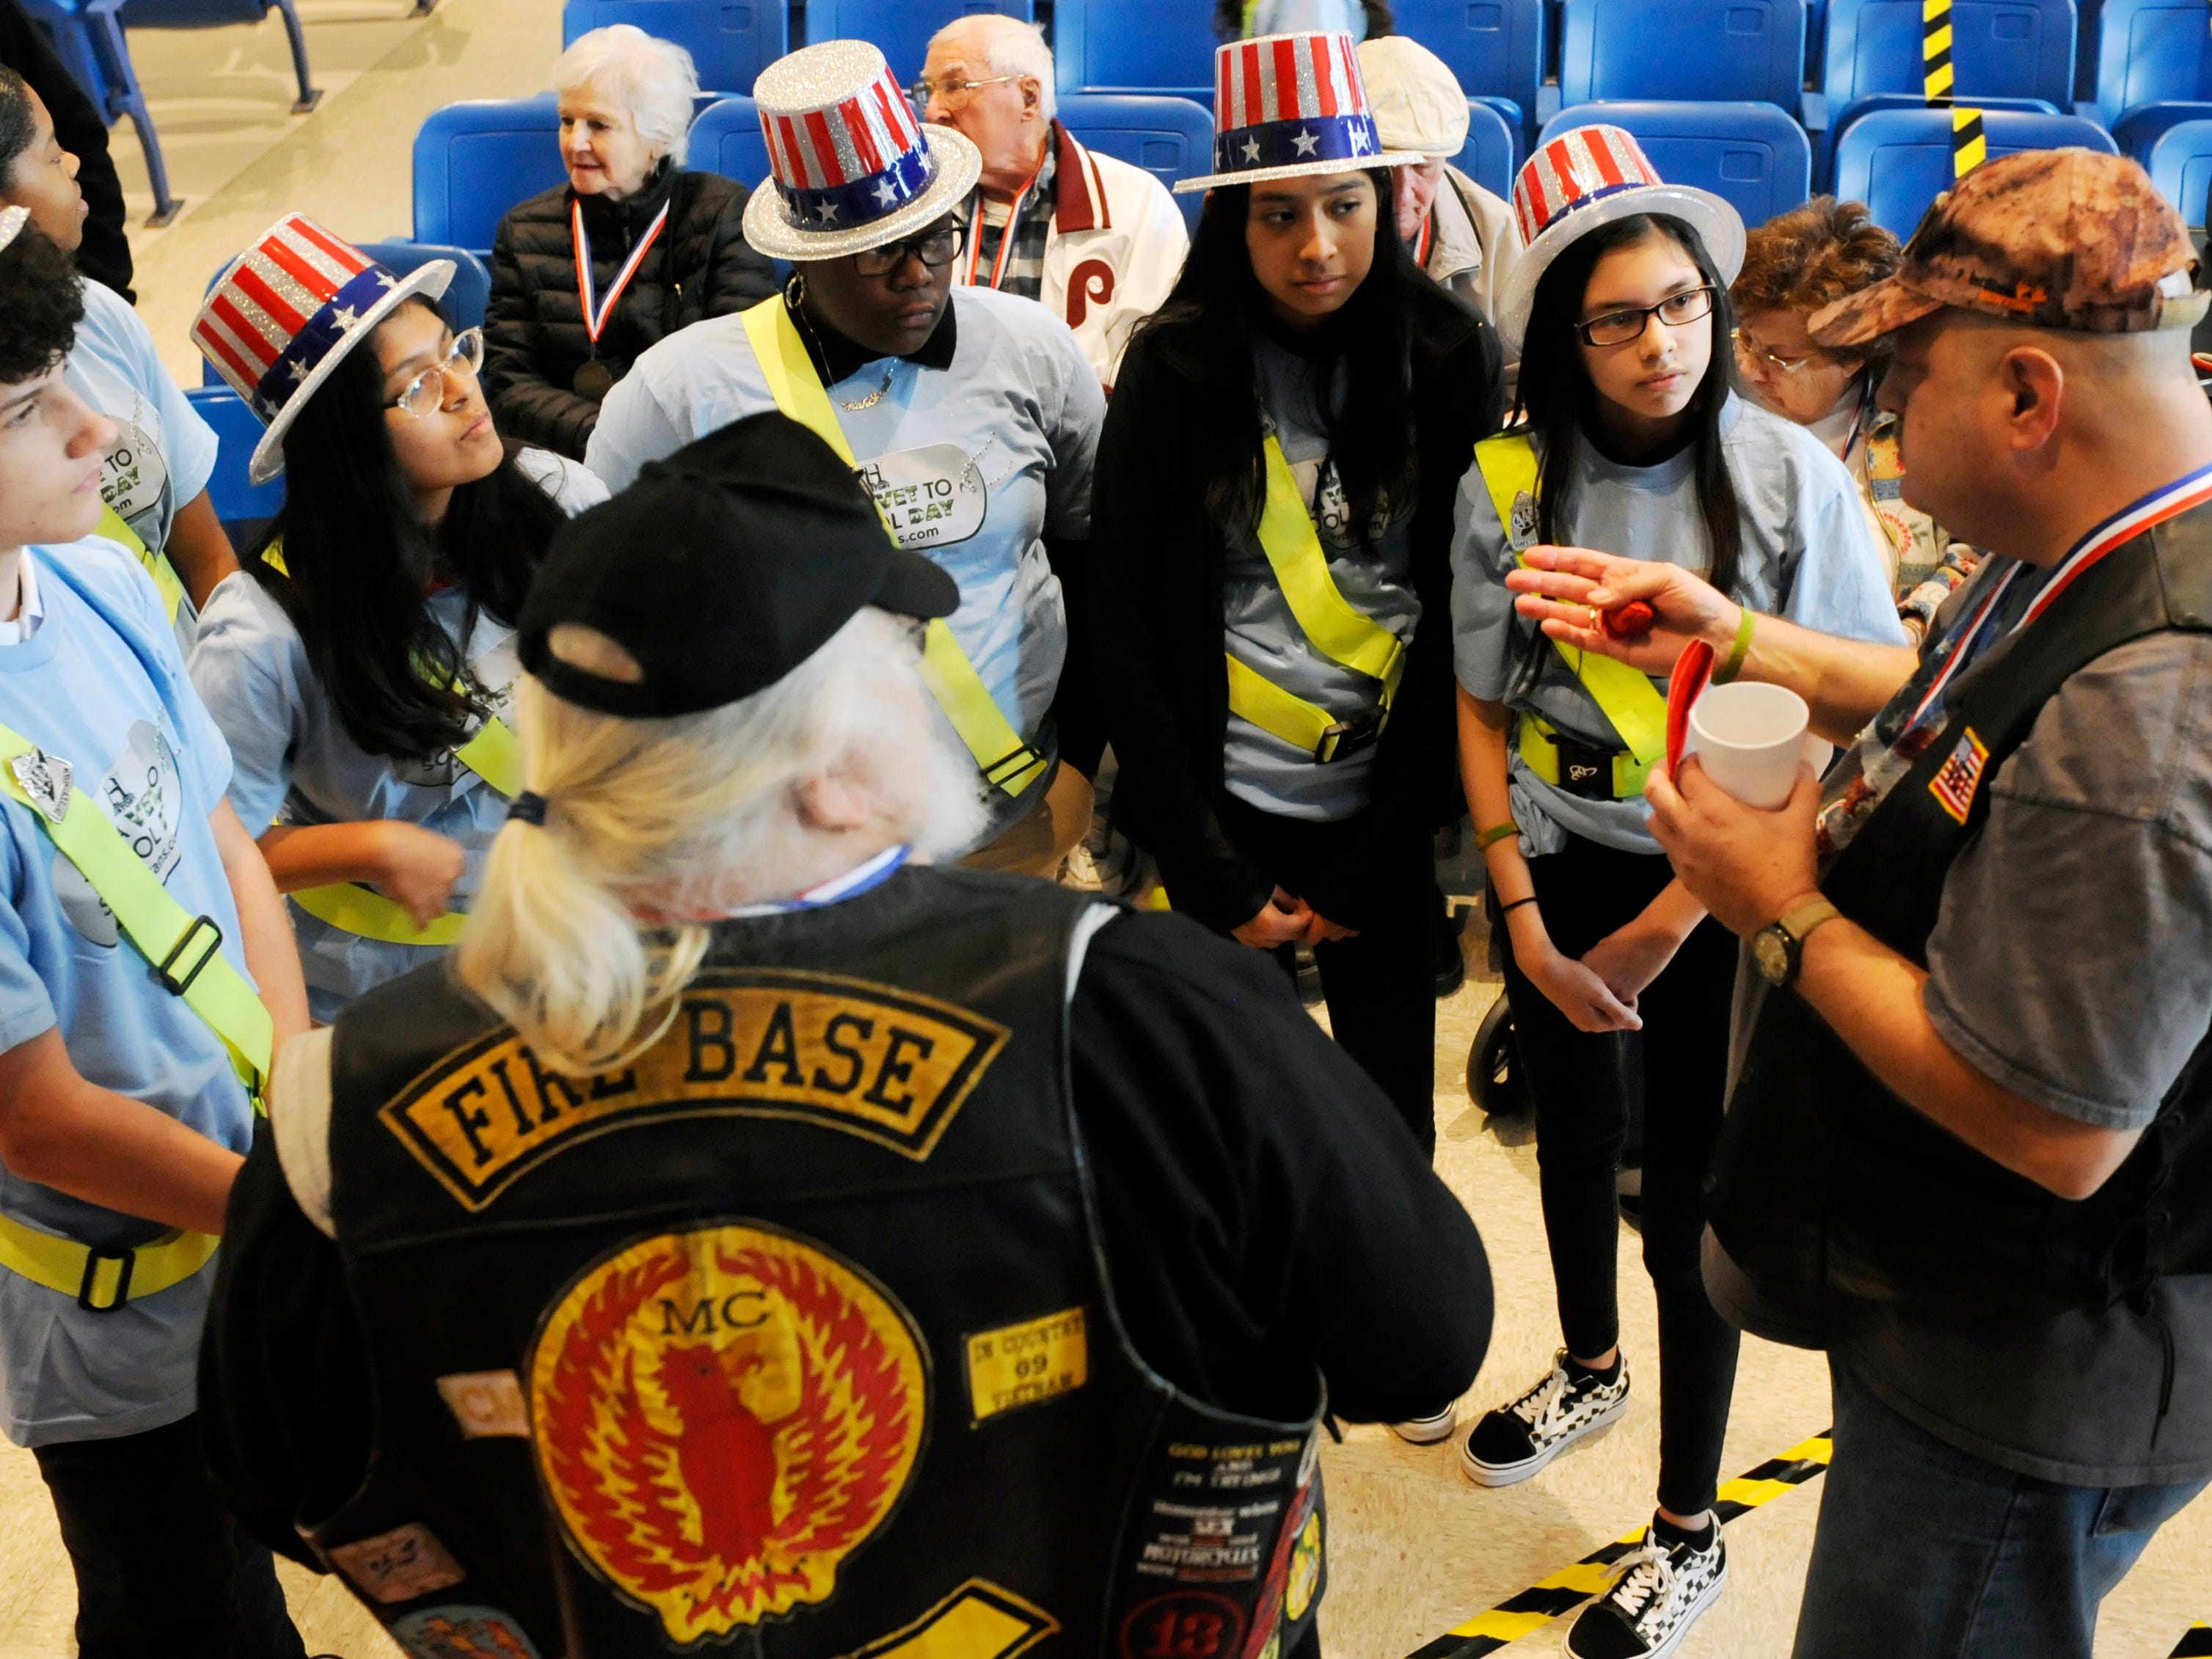 Veterans Memorial School staff and students honored local veterans during a special assembly. Students gave attendees handmade pin and thread art representing a rose and a school medal. Over 30 veterans attended the event on Wednesday, November 14, 2018.